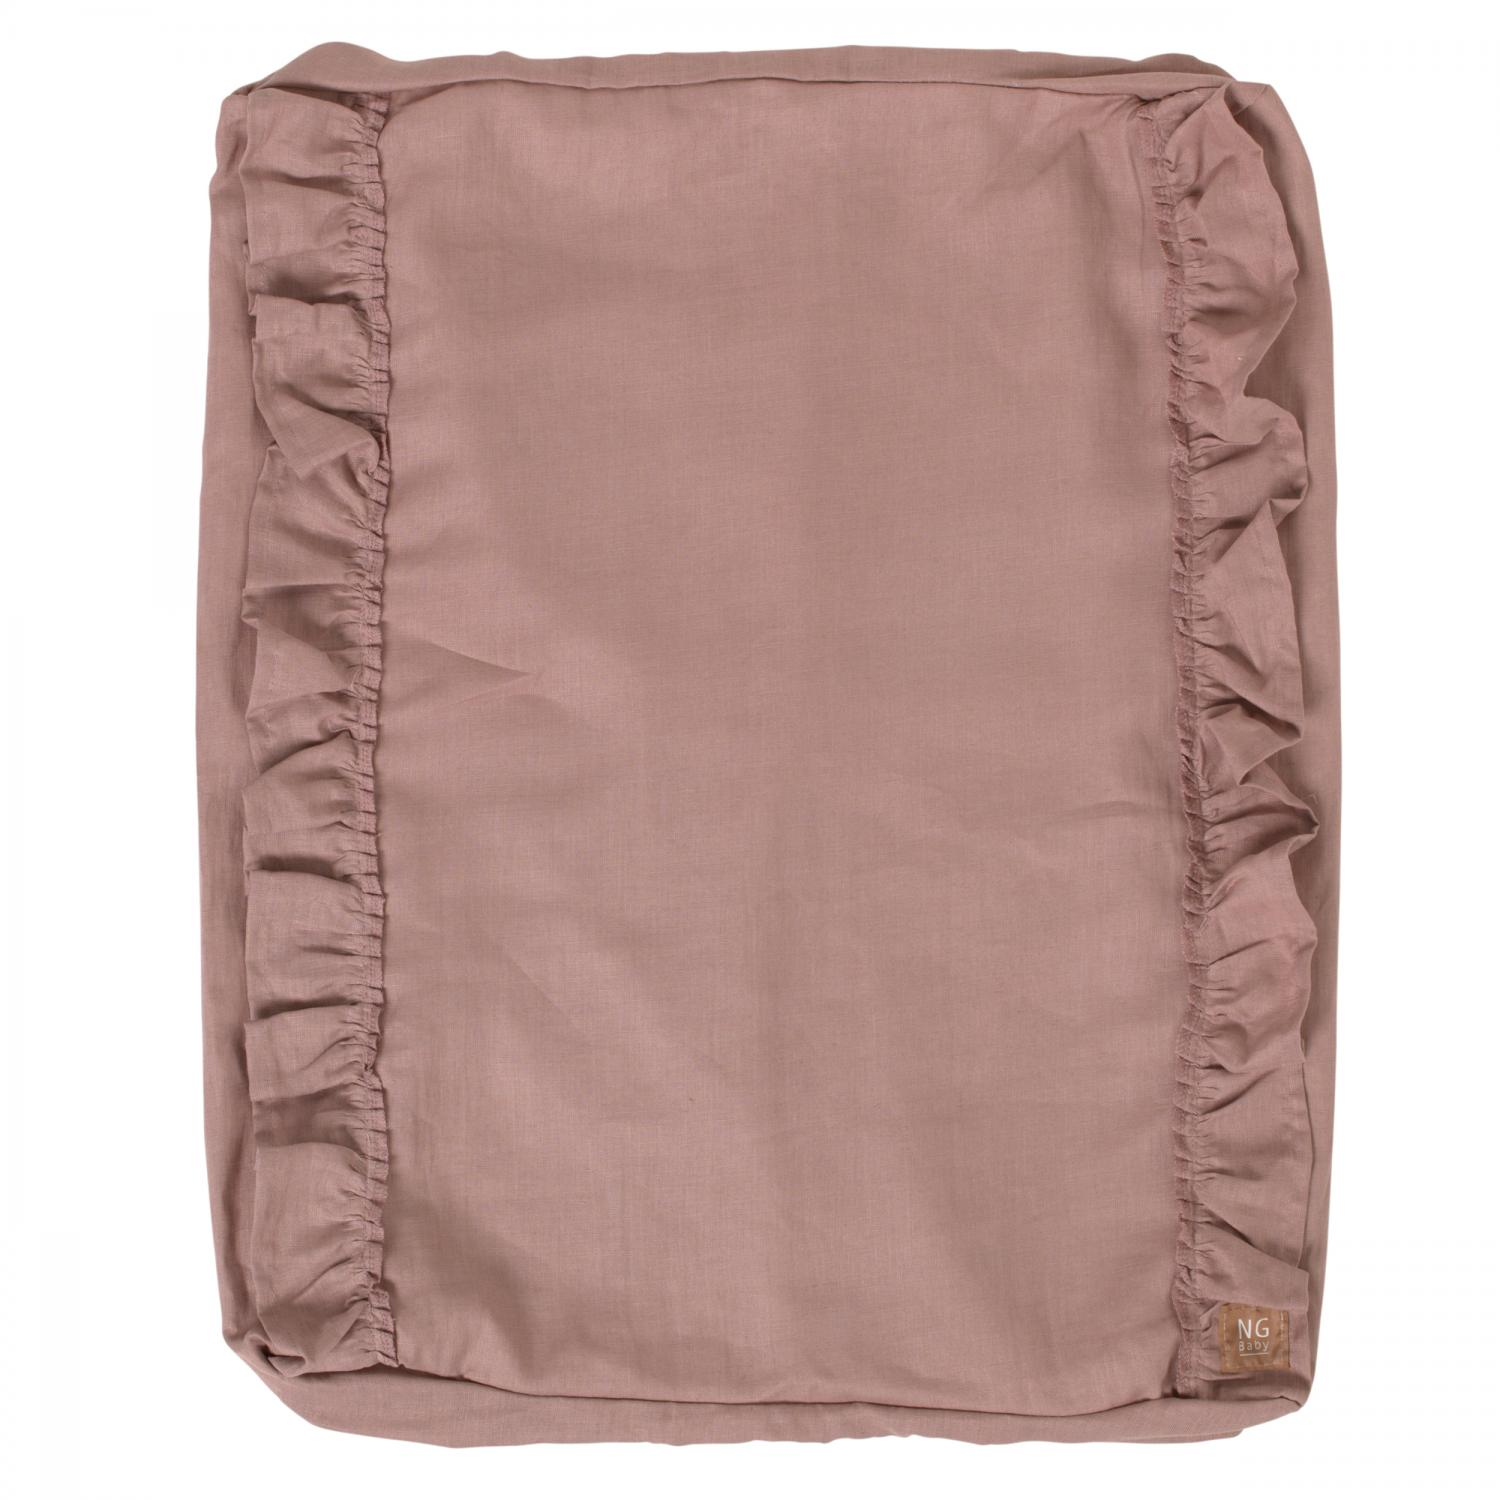 Changing pad ruffle cover | Dusty pink | Mood ruffles